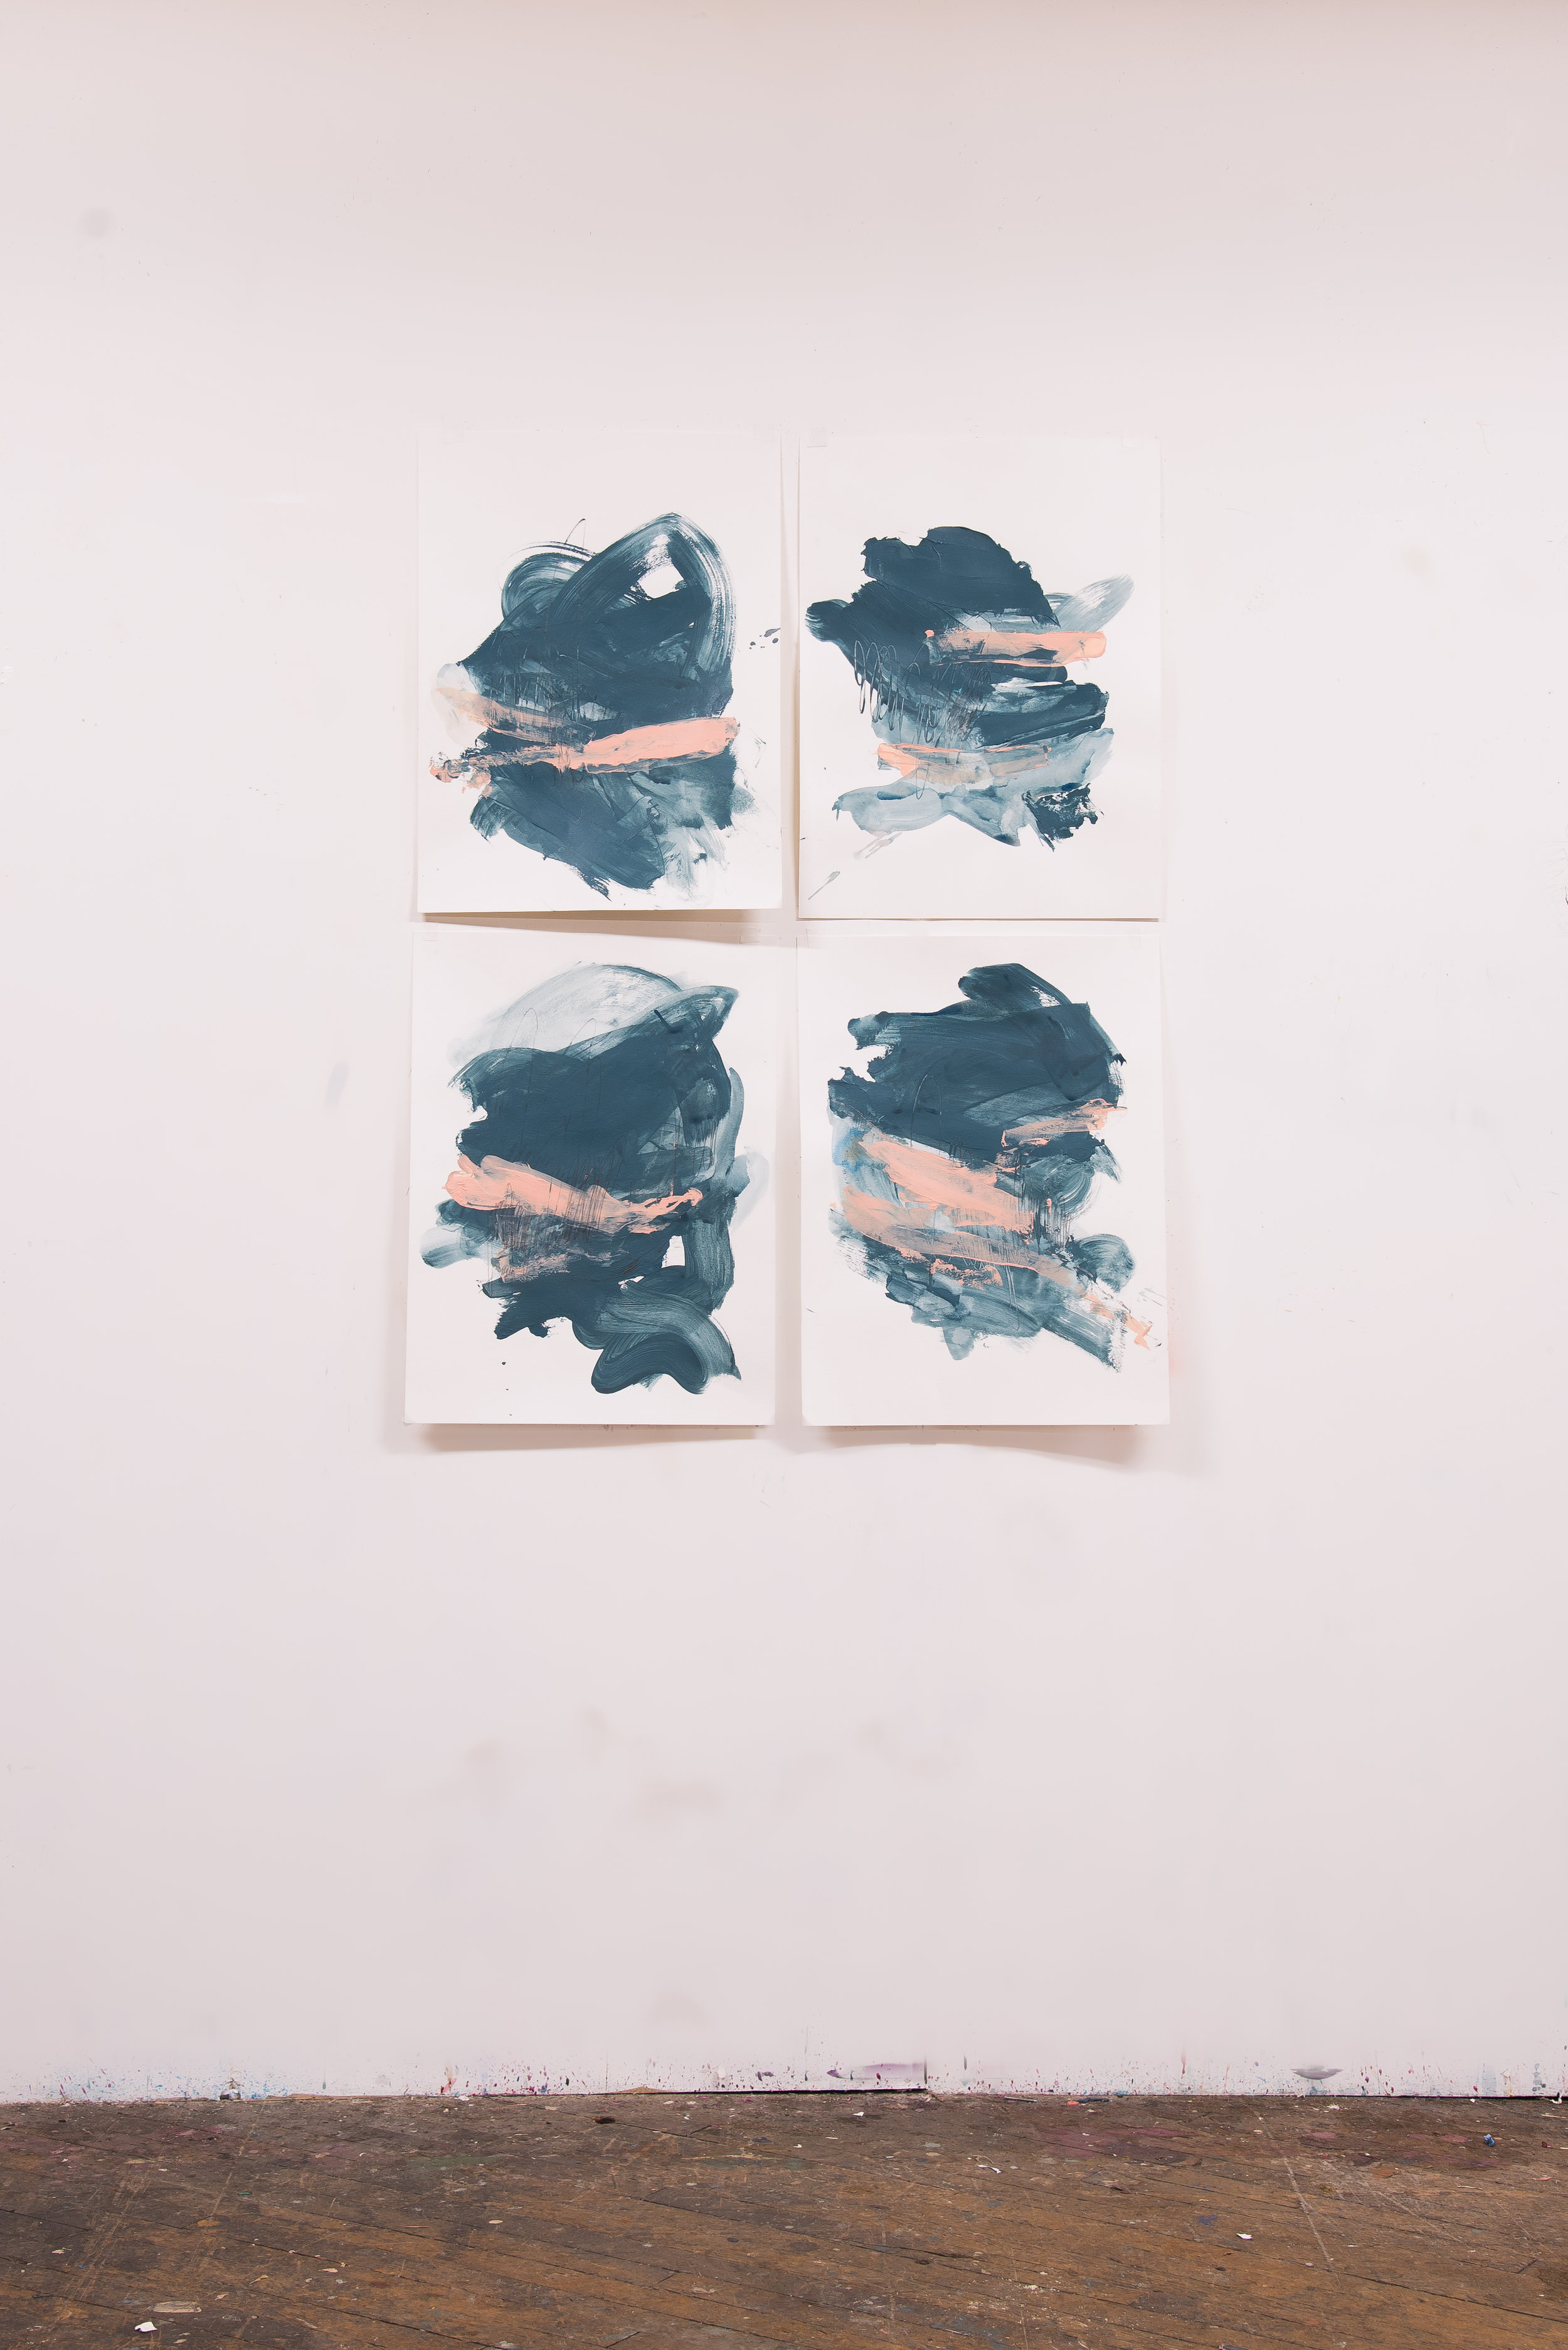 """Equator #1-4 , 18""""x24"""" each, acrylic + graphite on paper, 2018, available"""